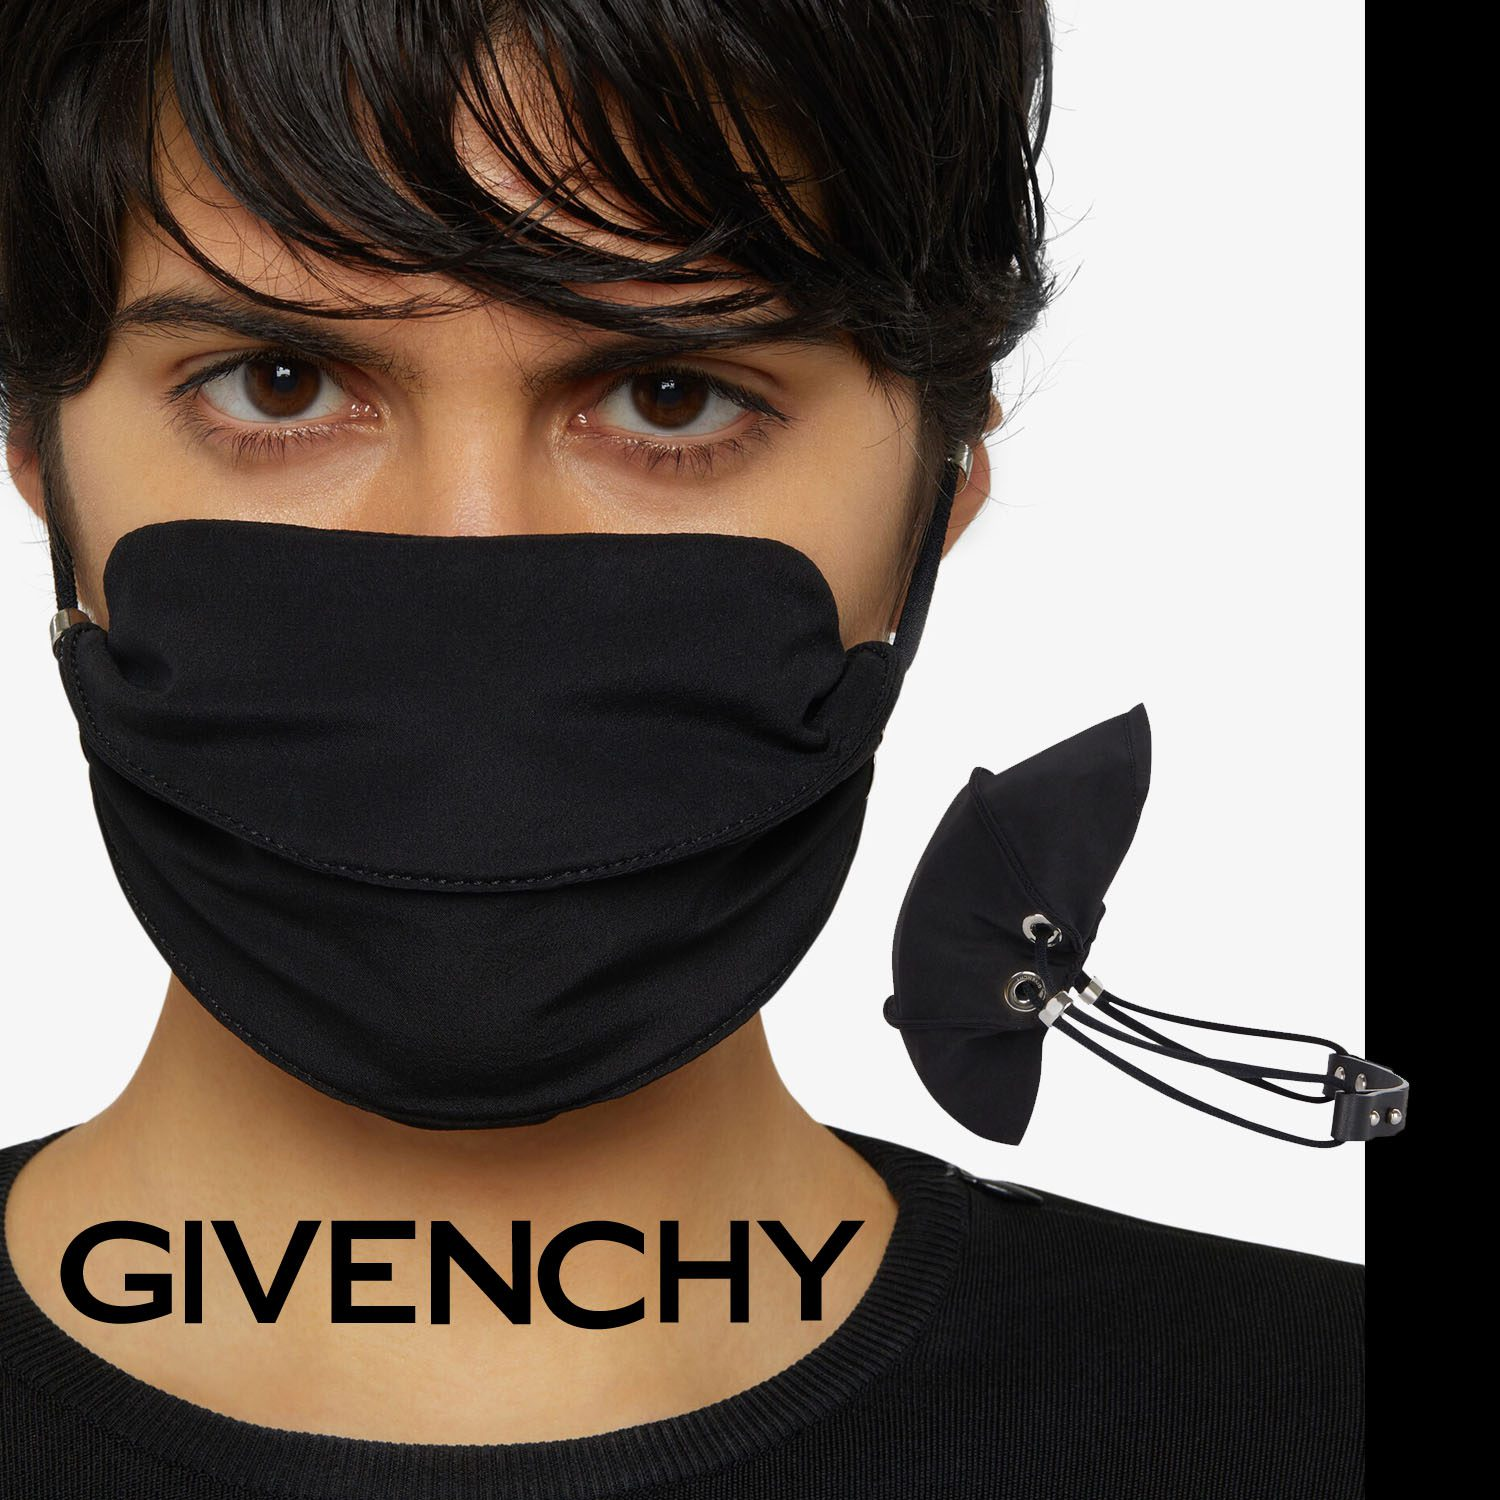 Givenchy Protective Face Mask 2021 by RUNWAY MAGAZINE